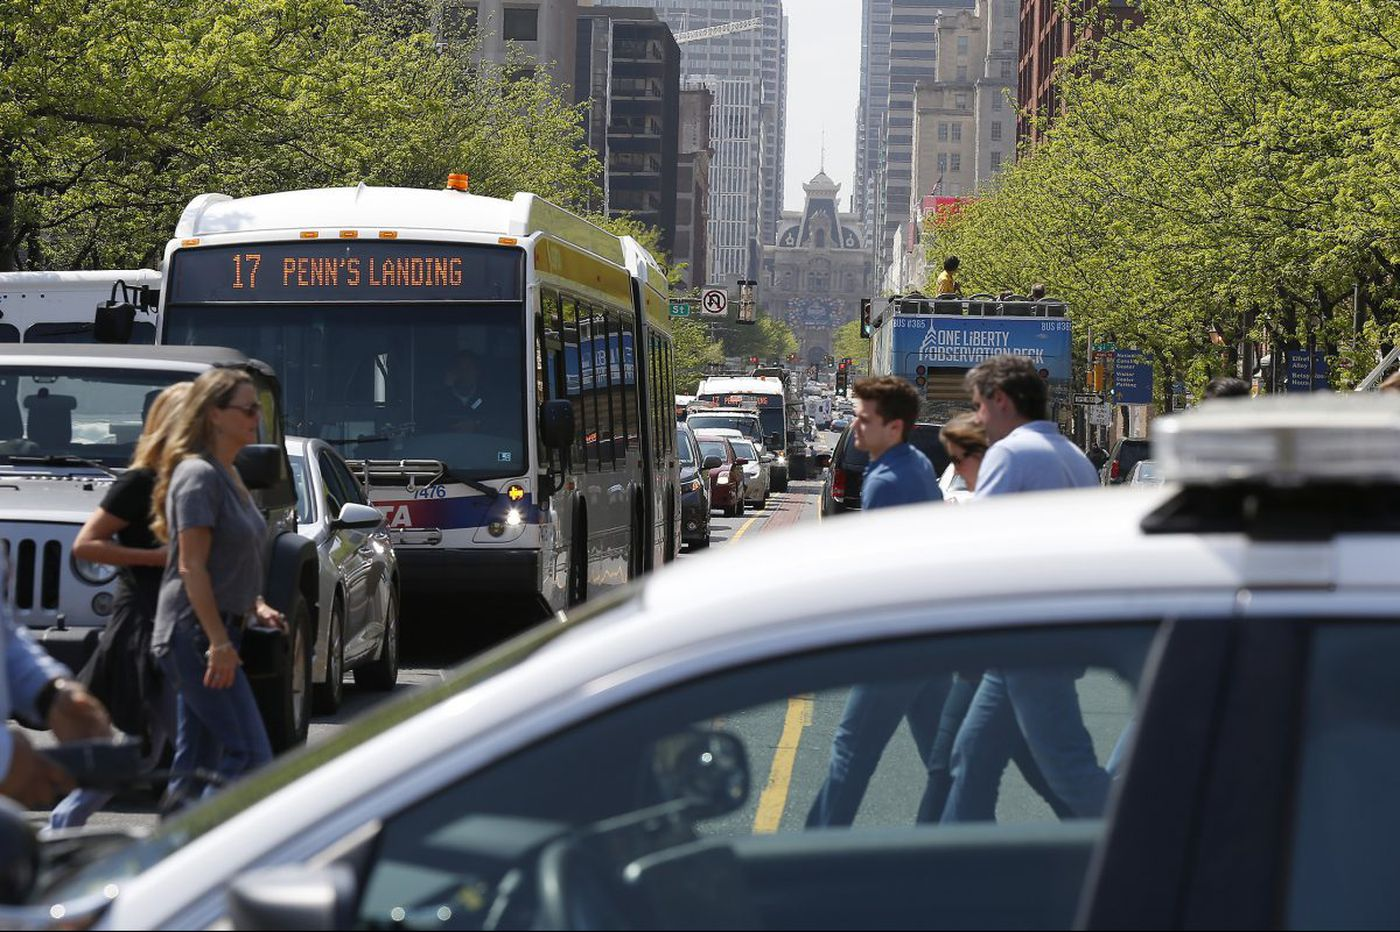 Philly needs a Heimlich maneuver for its choked streets | Editorial